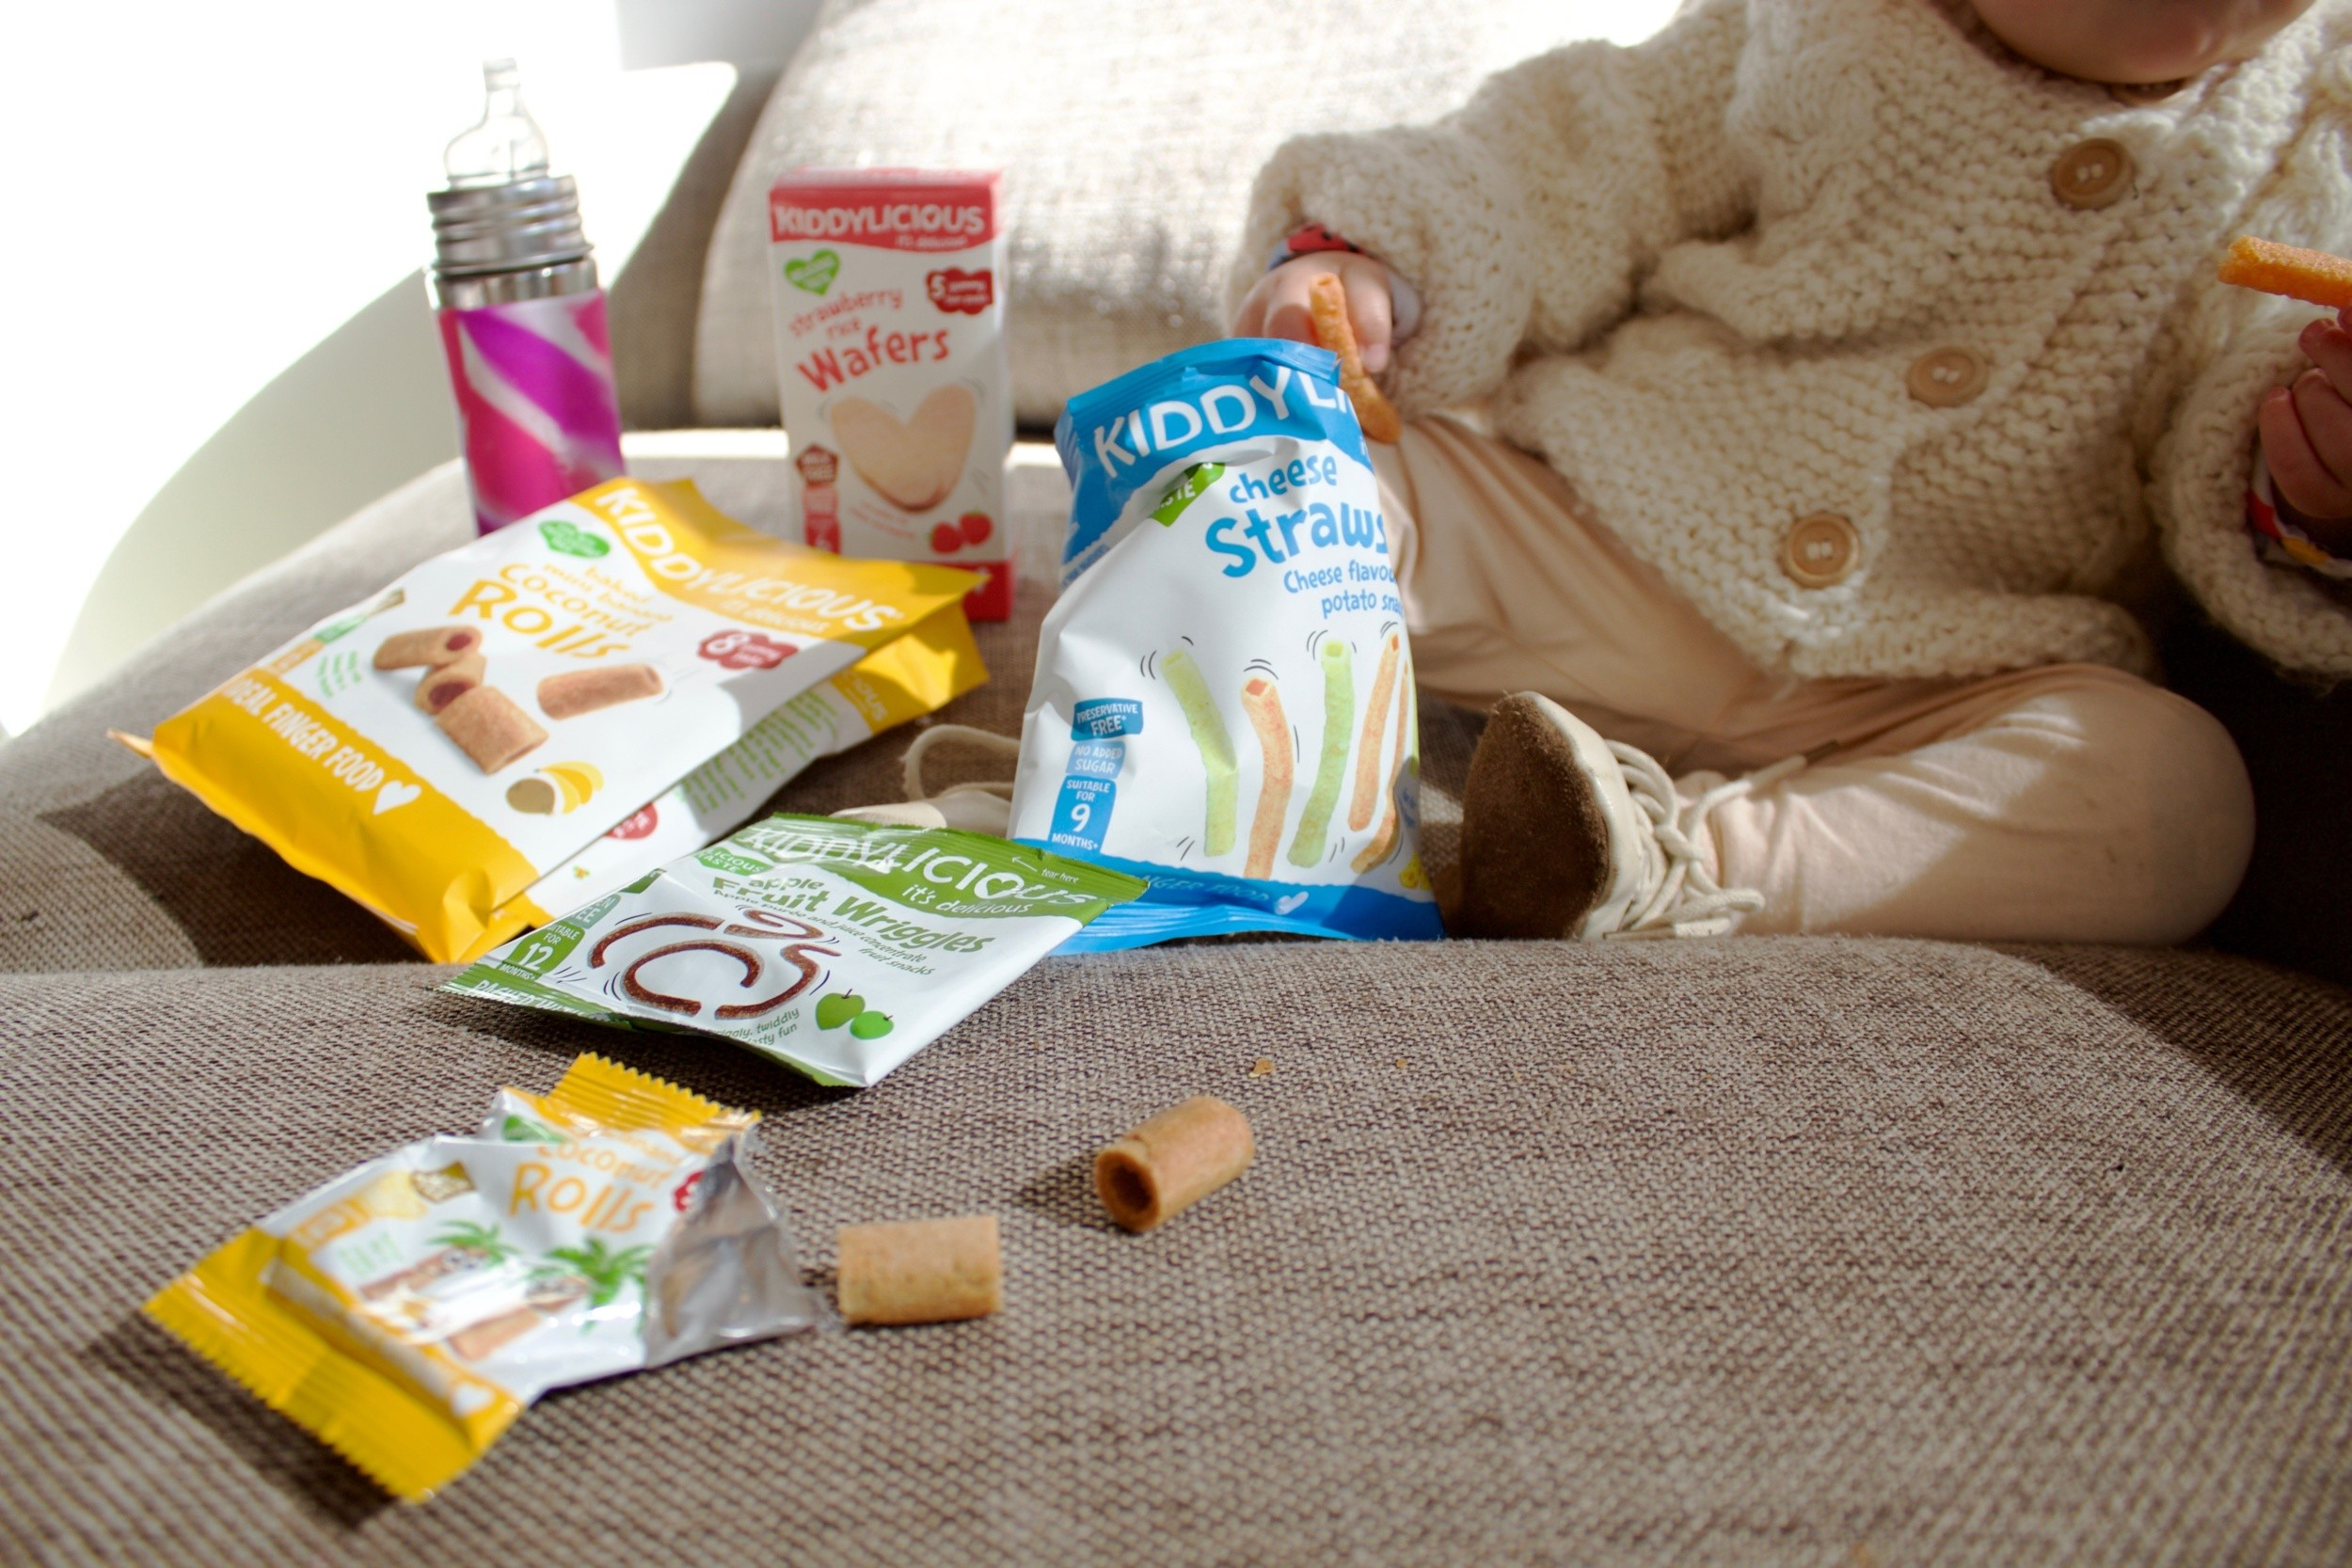 Kiddylicious: Perfect on the go kids snacks